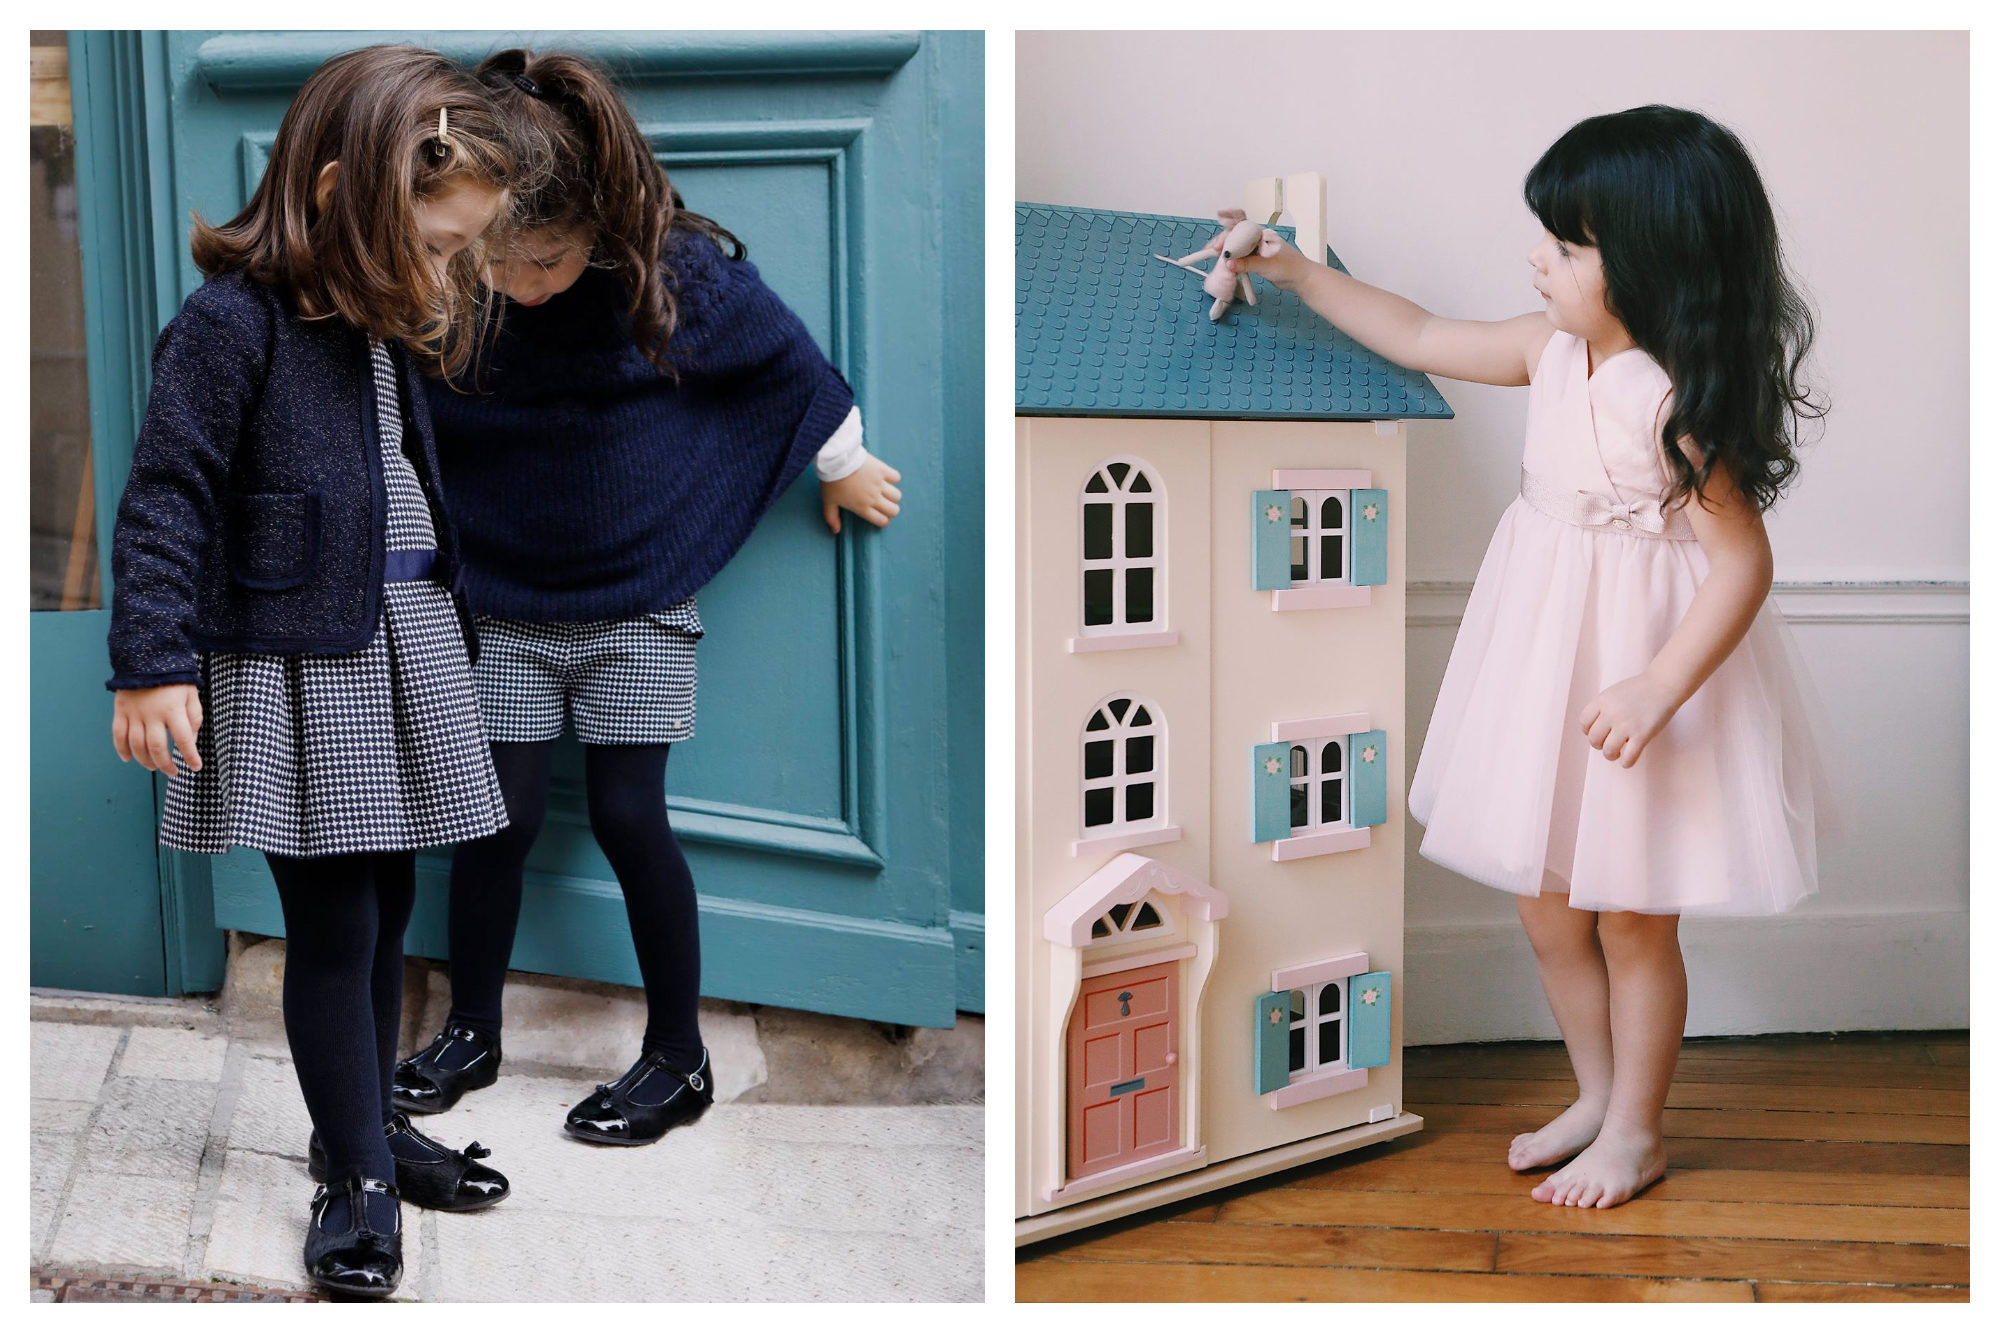 Two little girls wearing navy cardigans and shawls with matching woolly tights and polished black shoes (left). A little girl wearing a pink princess dress from Parisian chlidren's clothing brand Tartine et Chocolat while playing with a dolls' house (right).